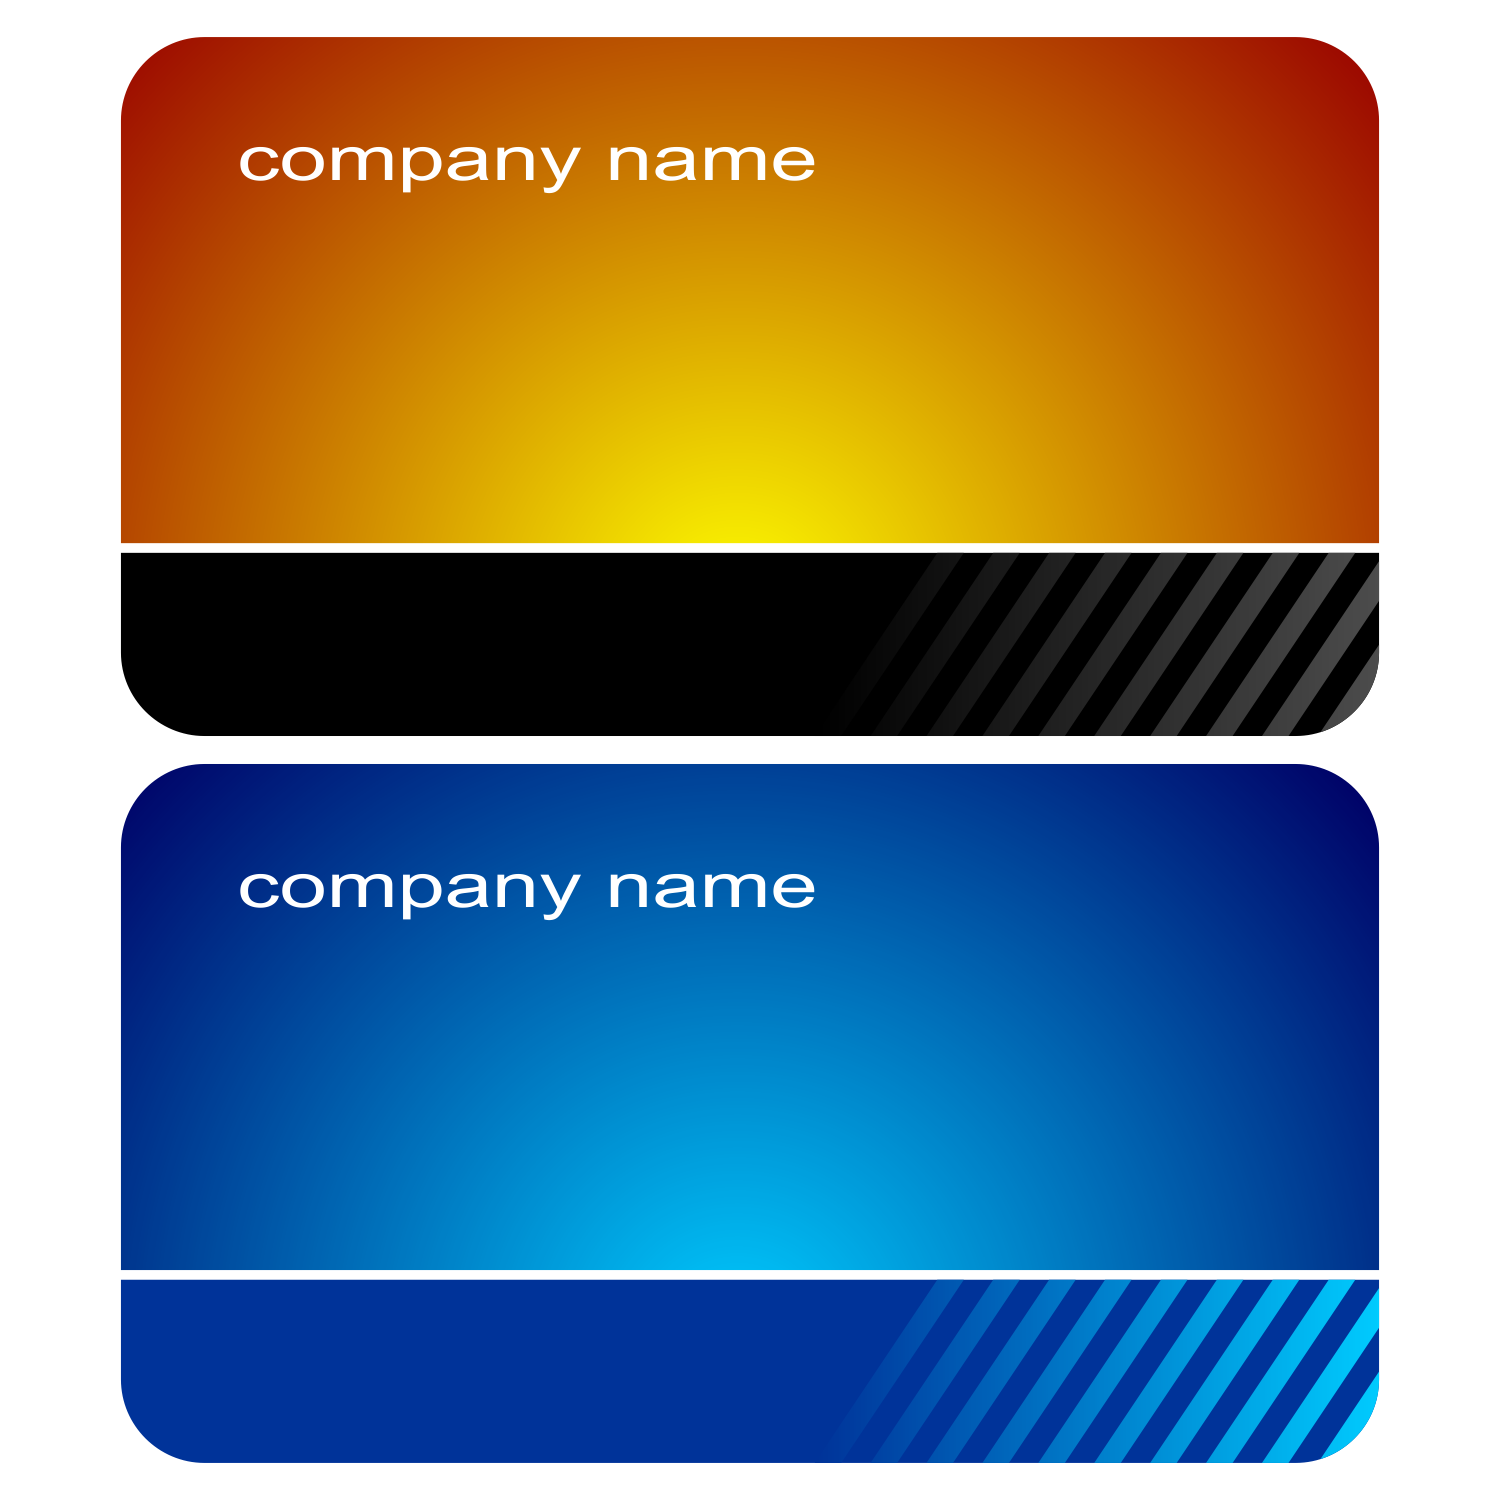 PNG For Business Use Transparent For Business Use.PNG Images..